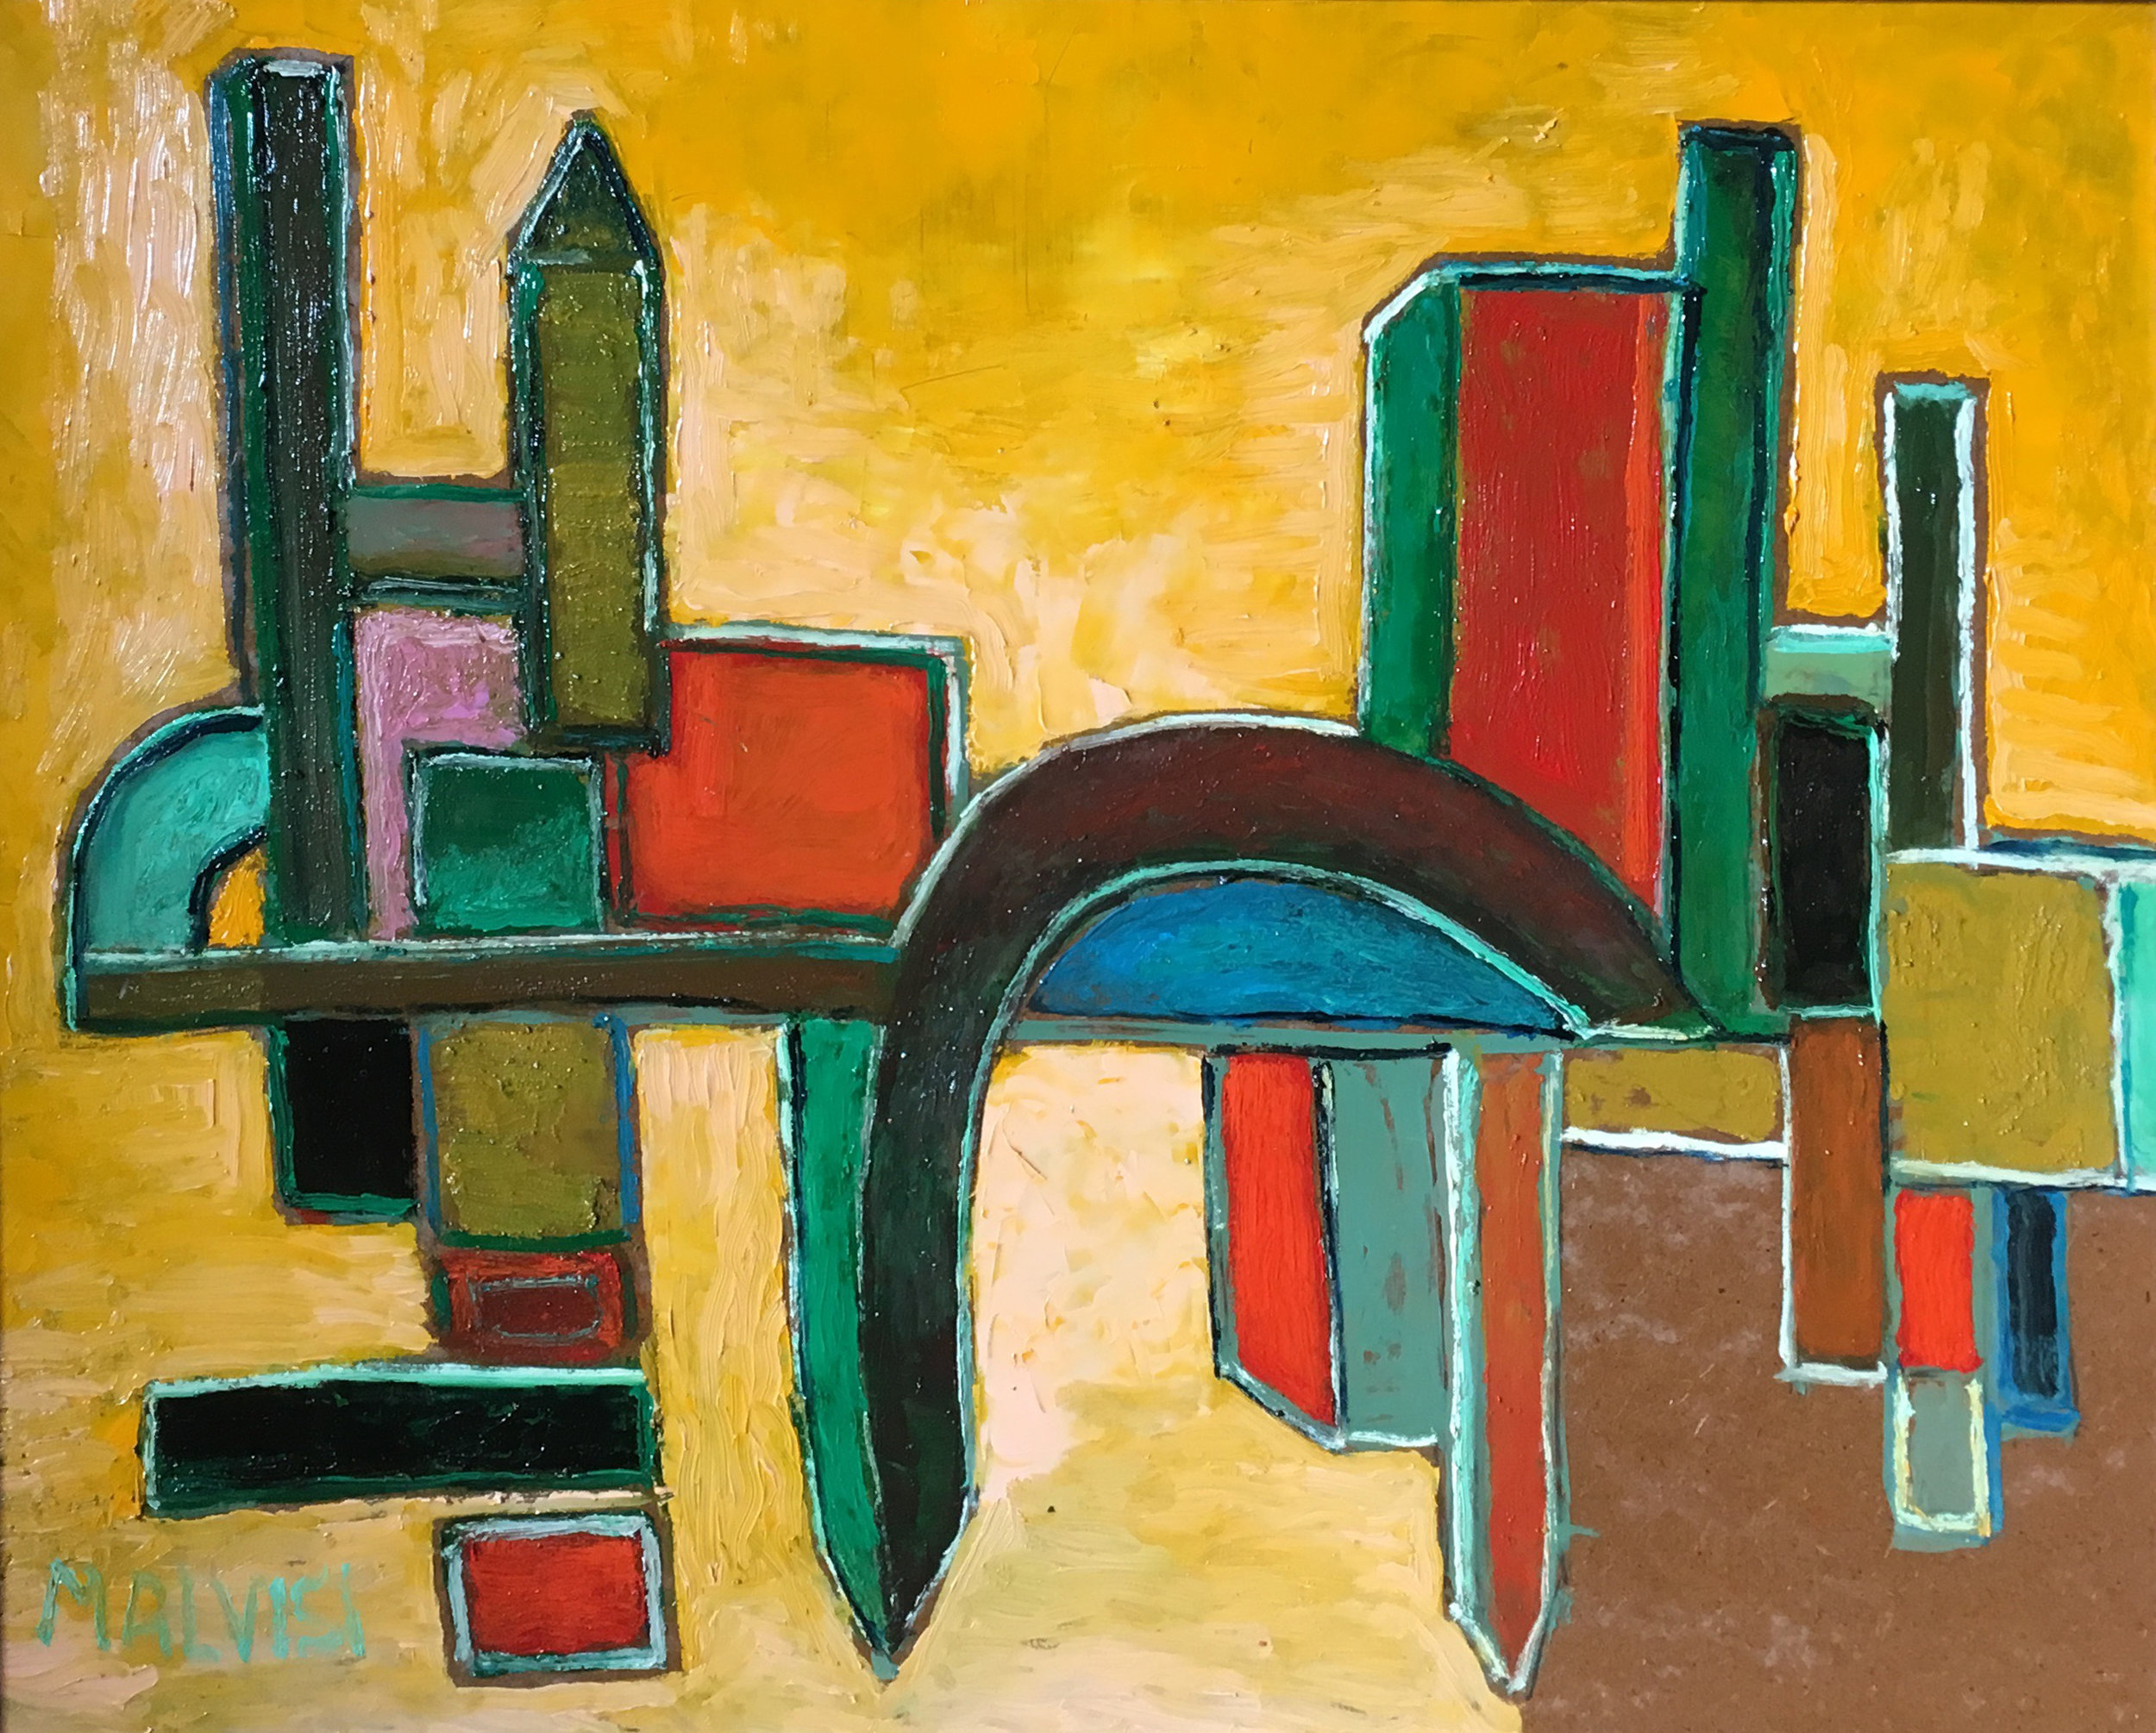 <b>Architectural roots</b><br> (Orig.Radici architettoniche) <br>2016 Oil on wood <br> cm 58 x 68